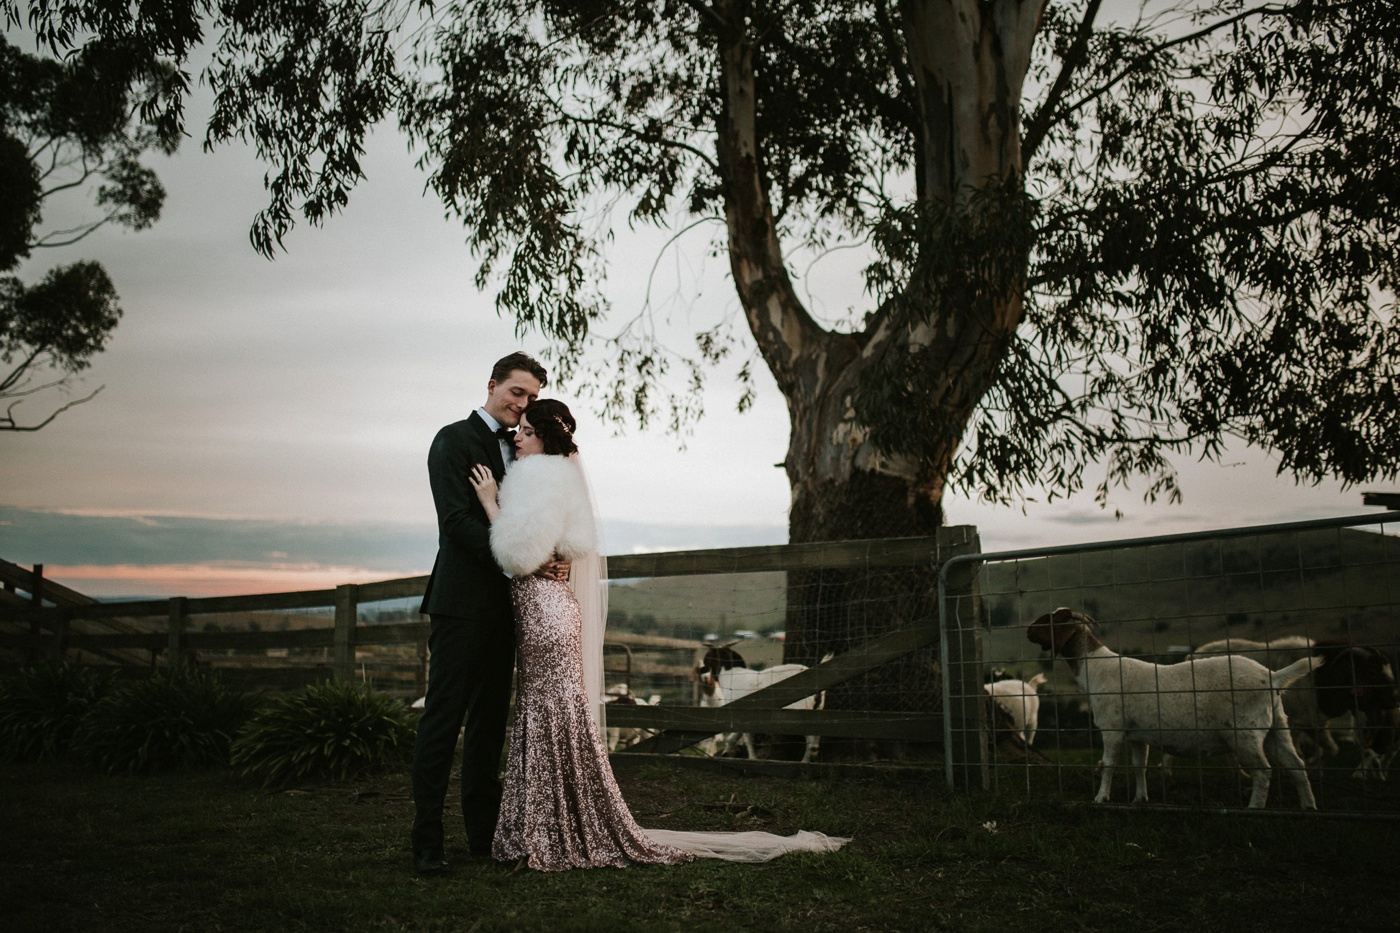 Emma&Morgan_Melbourne-Vintage-Elegant-Fun-Quirky-Yarra-Valley-Vineyard-Wedding_Melbourne-Wedding-Photography-84